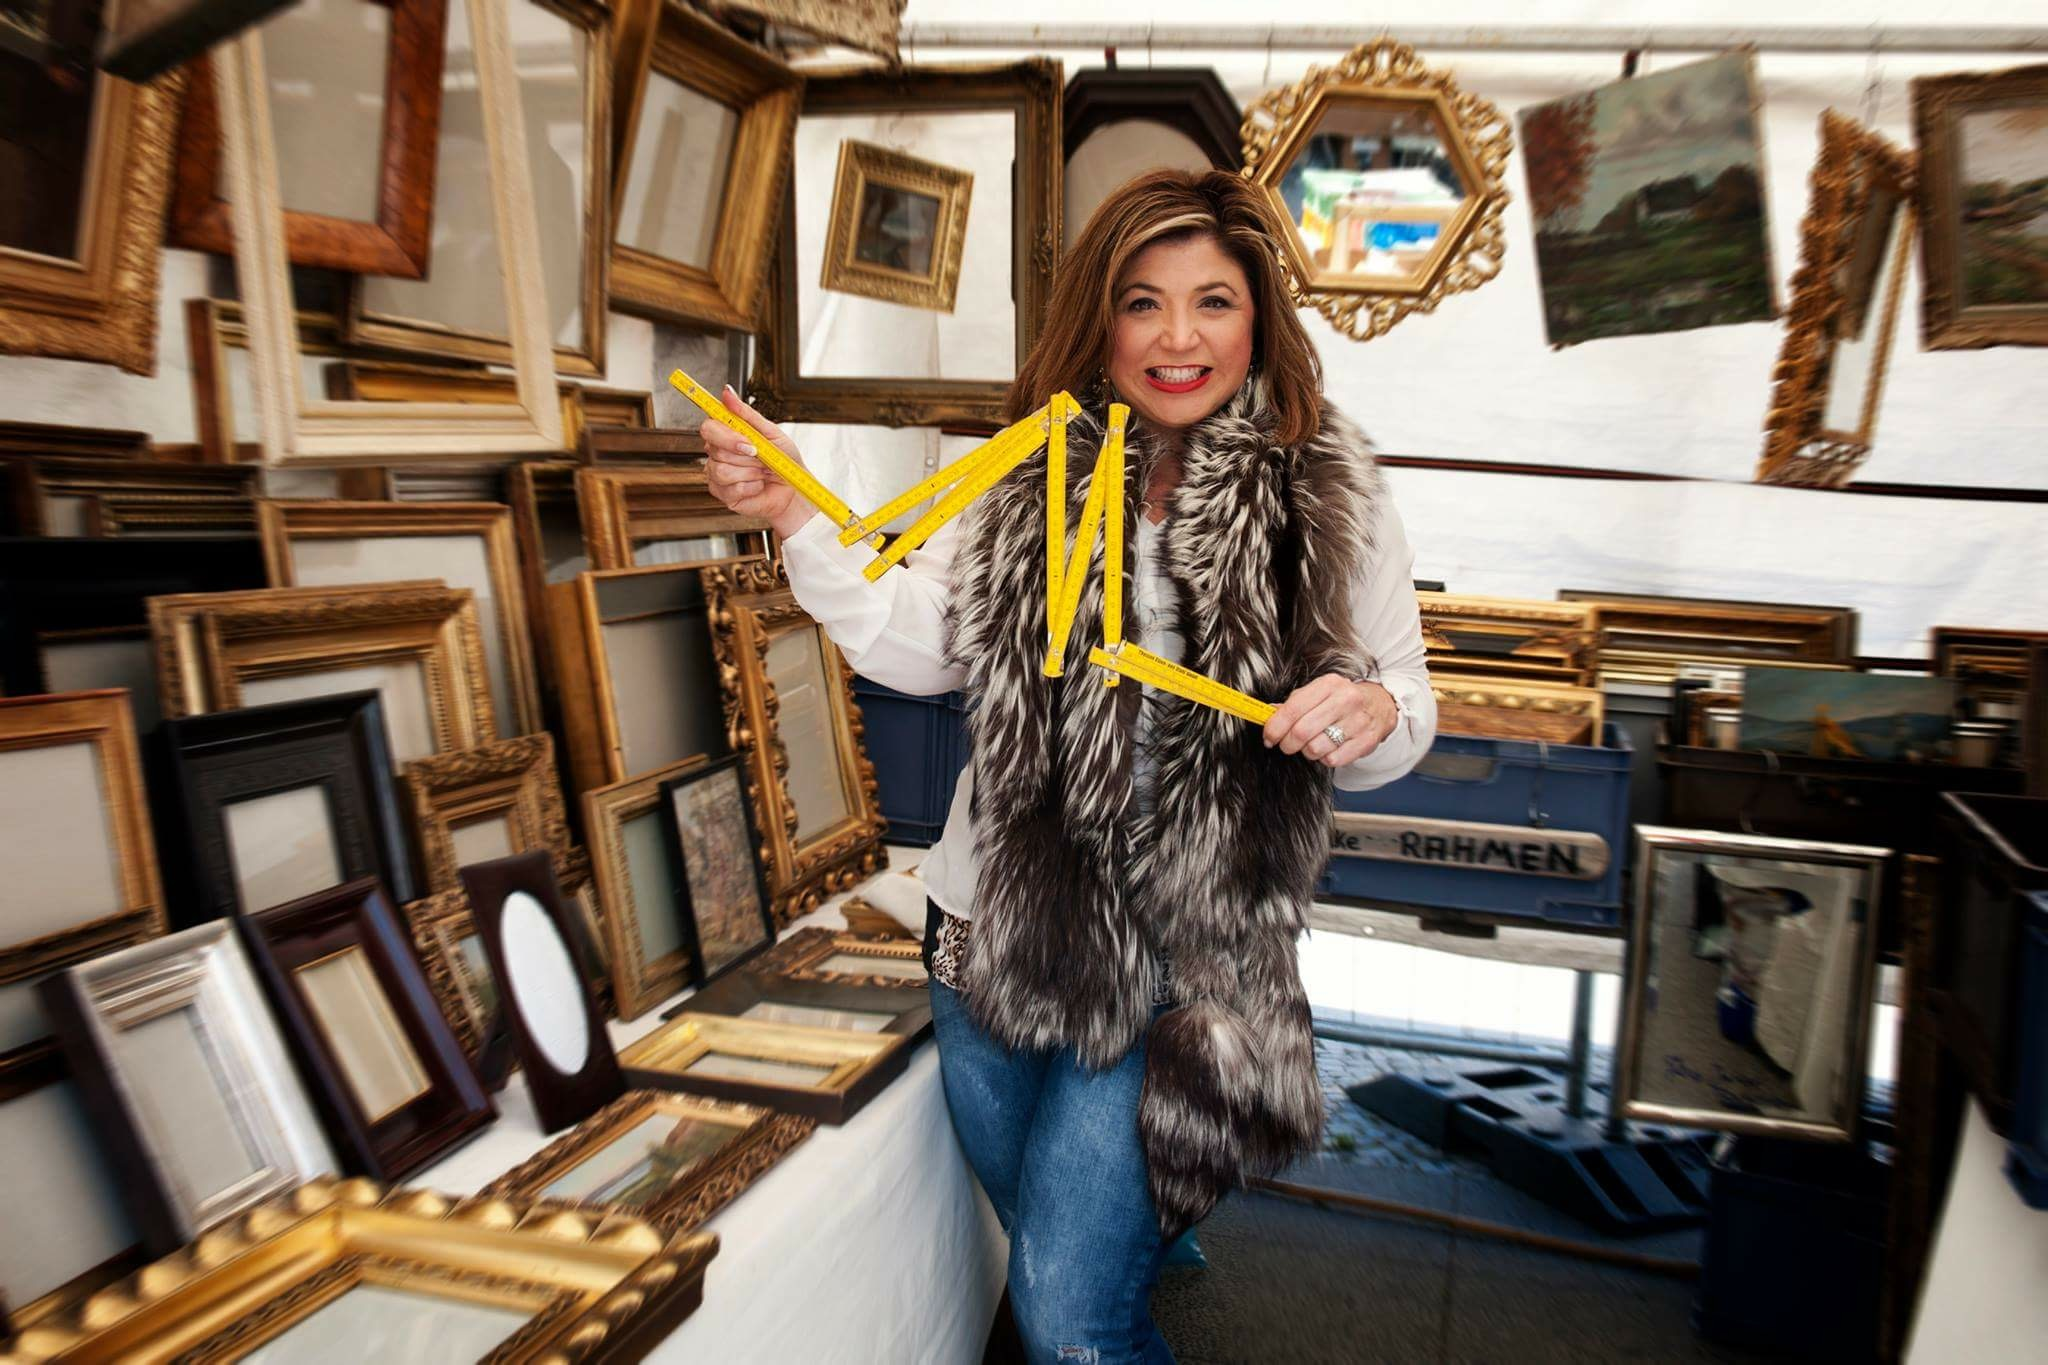 sourcing antique picture frames at the Berlin flea market